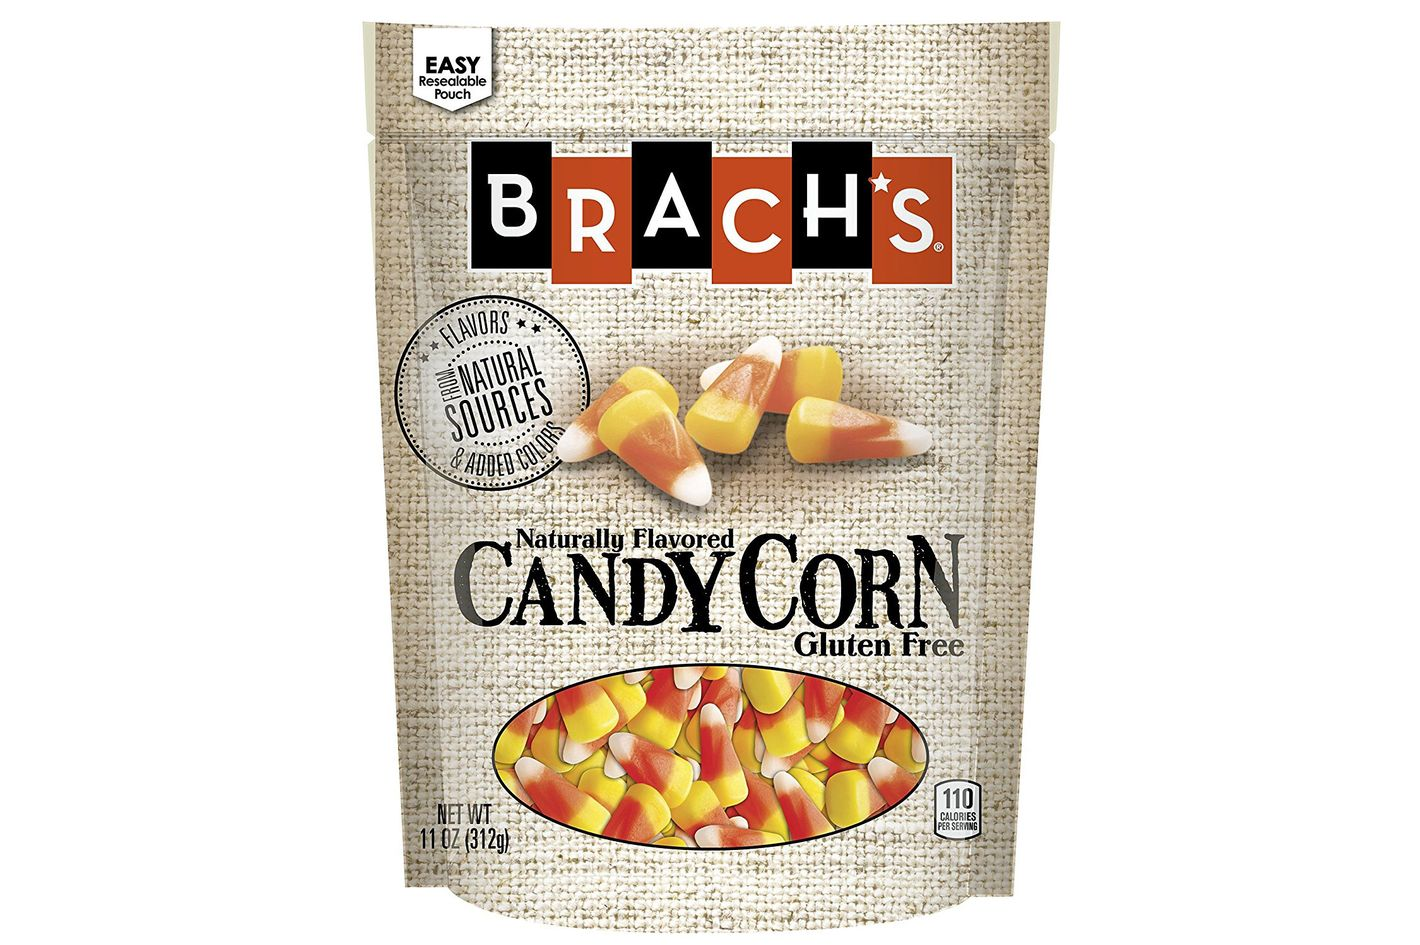 Brach's Natural Sources Candy Corn, 11 Ounce, Pack of 4